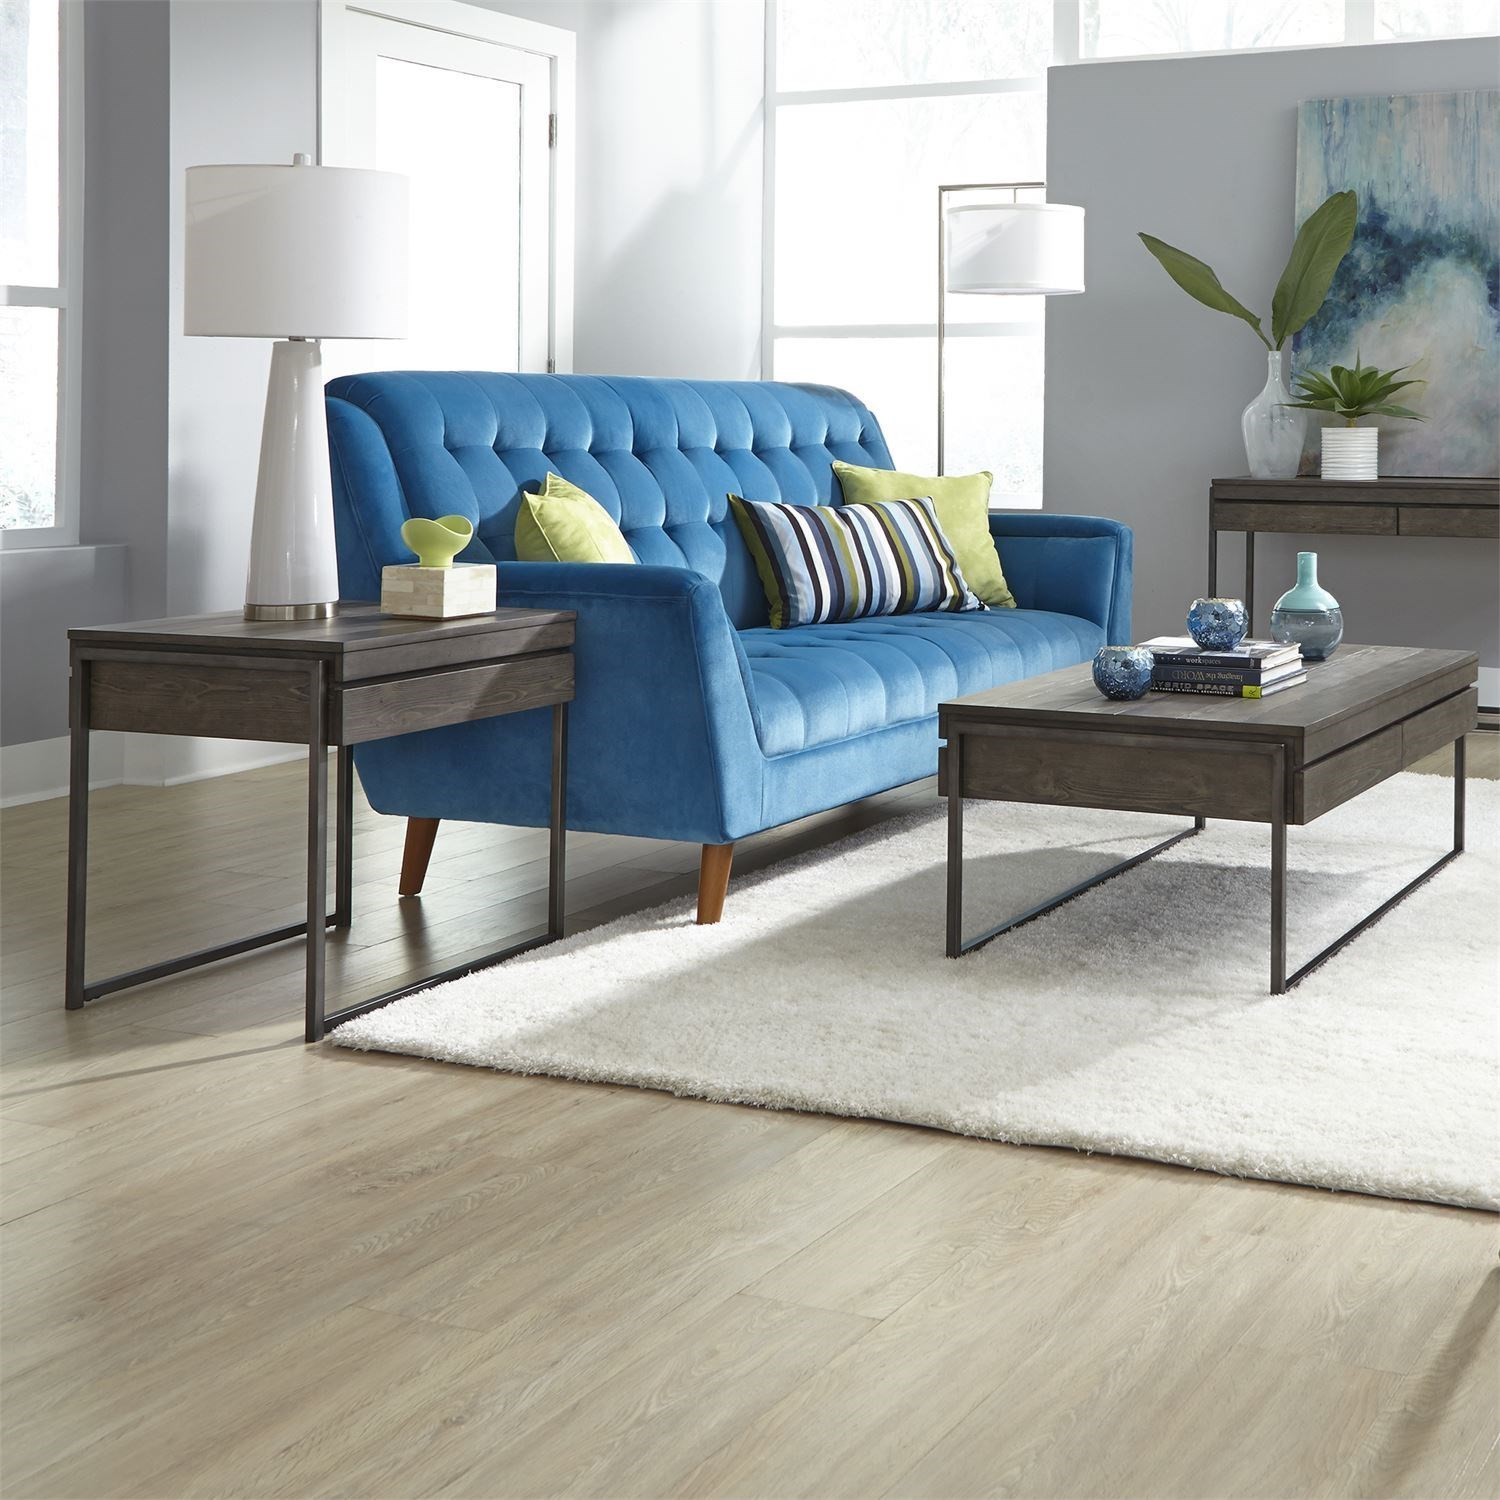 Gateway 3-Piece Set by Liberty Furniture at Northeast Factory Direct